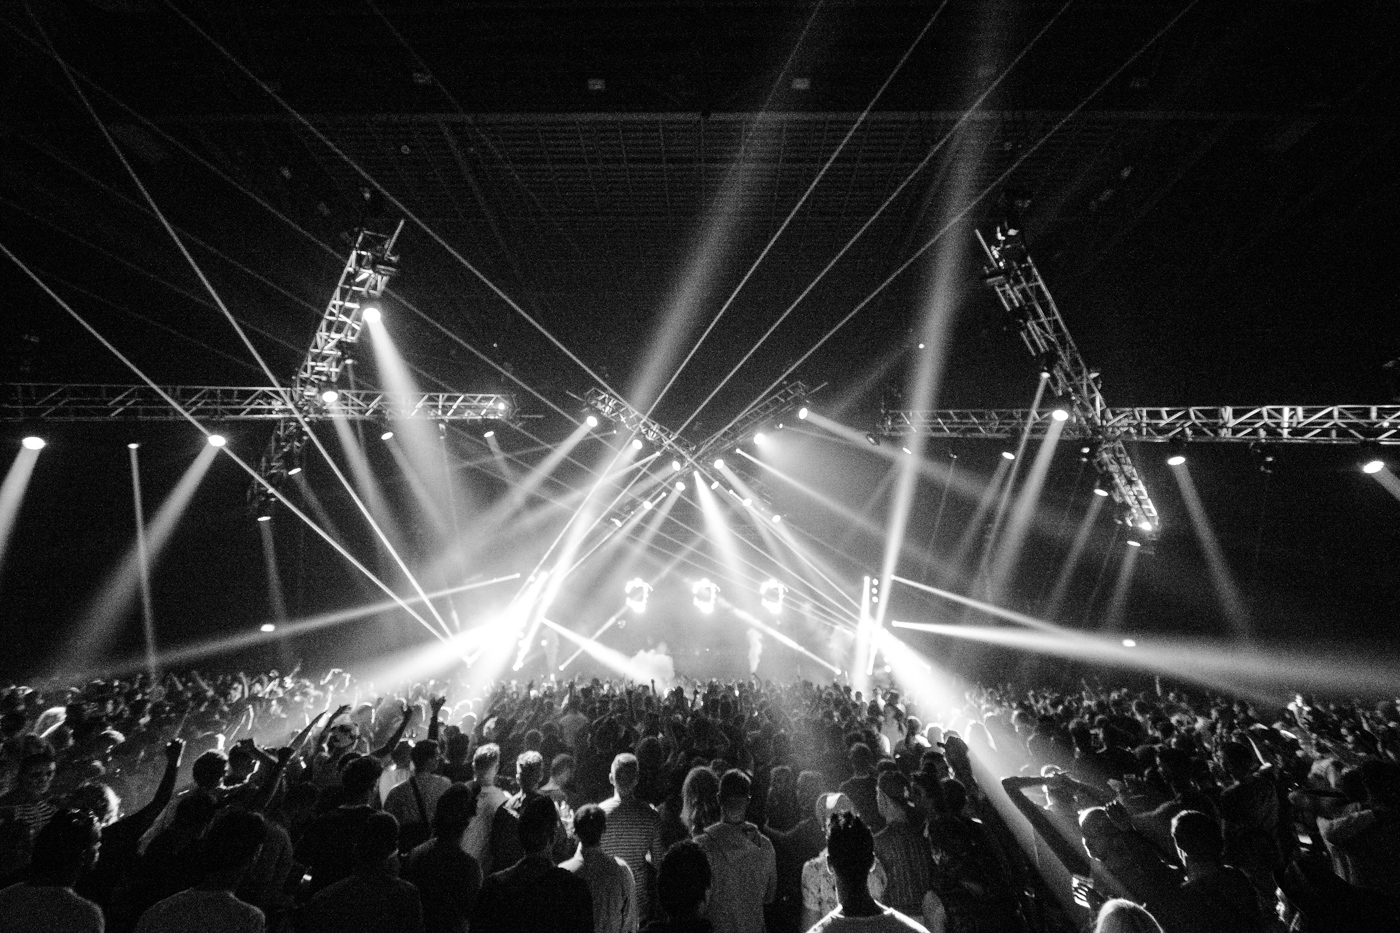 winterparty-at-3arena-dublin-30-10-2016-by-sean-smyth-39-of-53